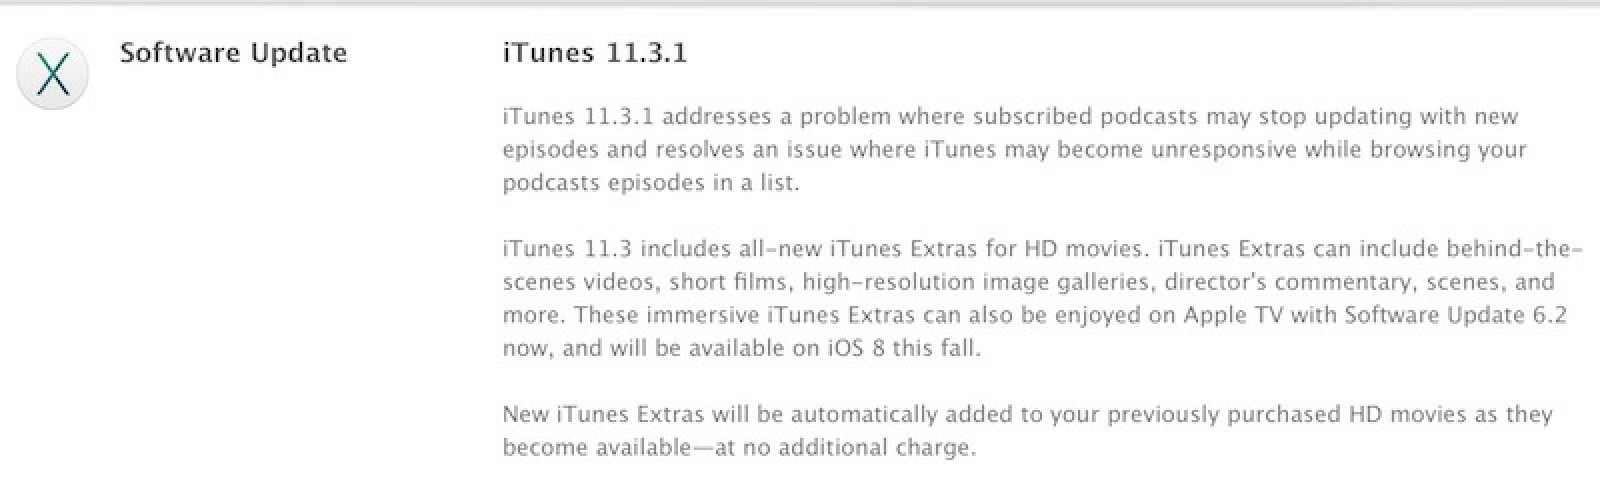 Apple Releases iTunes 11 3 1 With Podcast Bug Fixes - MacRumors